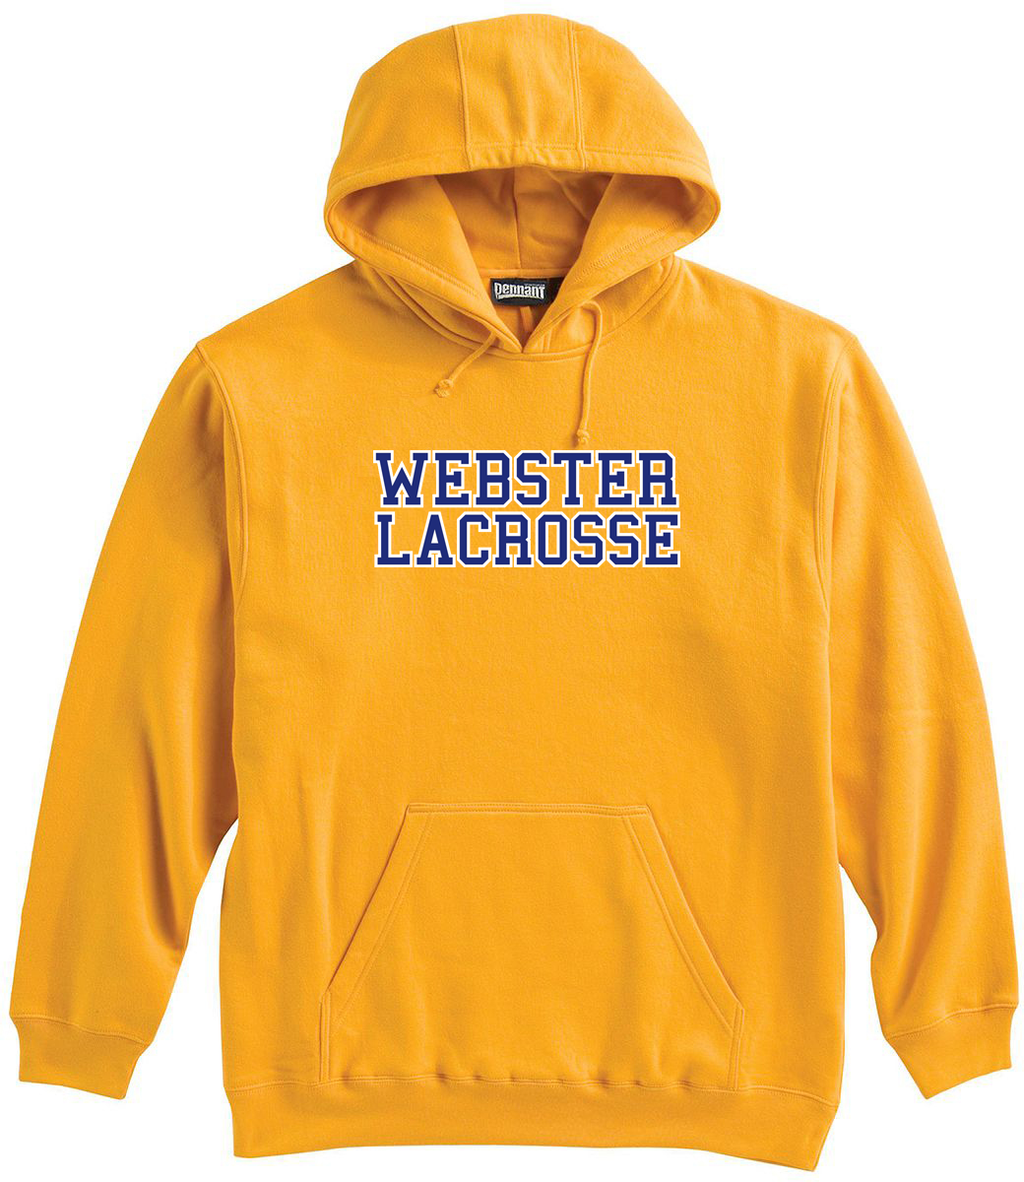 Webster Lacrosse Yellow Sweatshirt